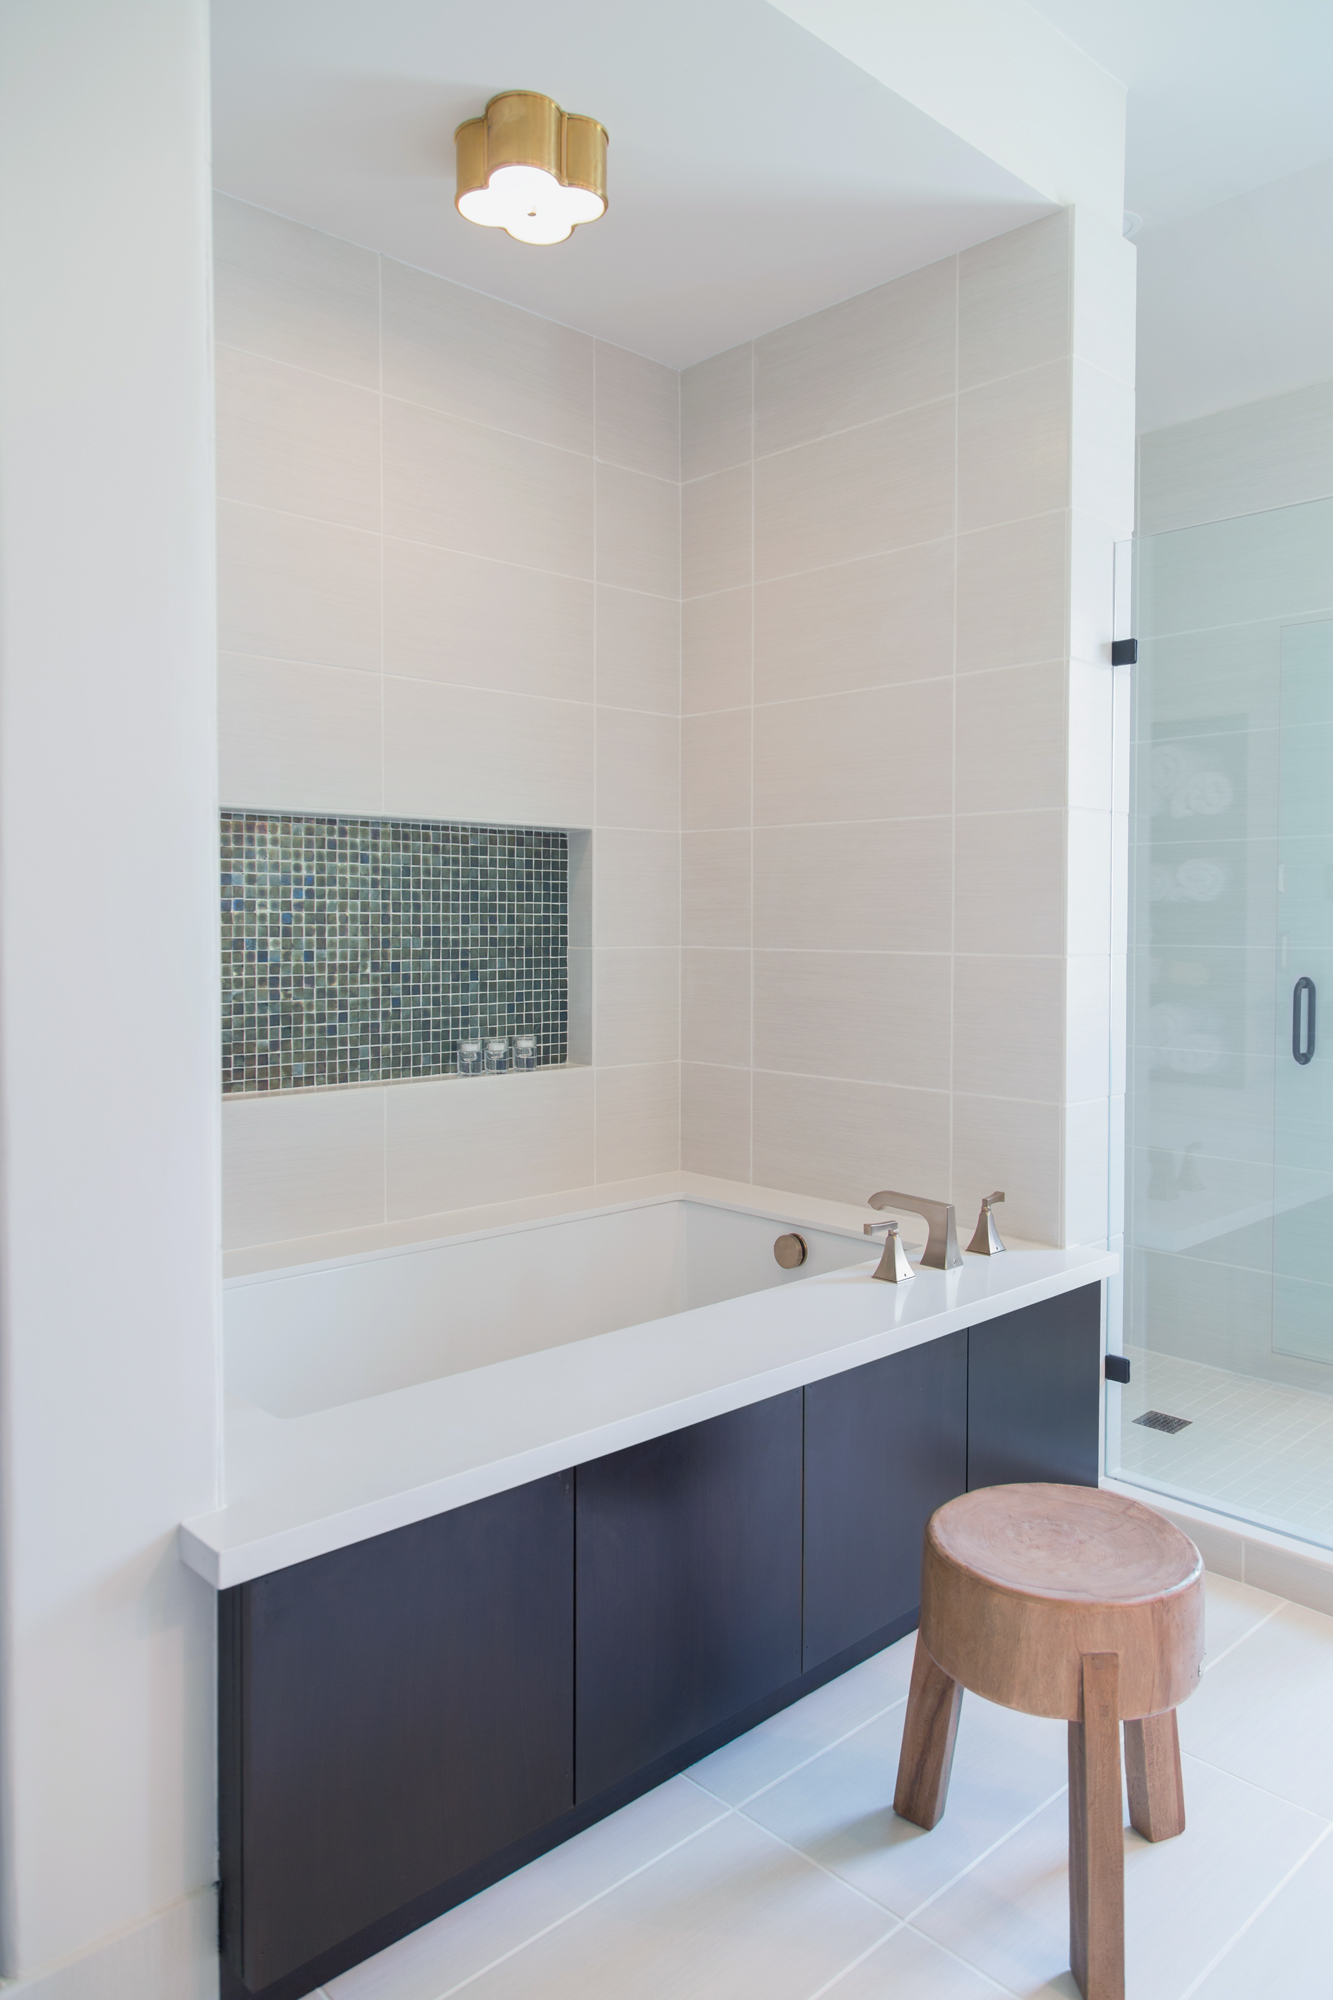 Here, the shower tile wraps the corner and flows into the area around the tub too, making for a more seamless look. Carla Aston Designer, Tori Aston Photographer